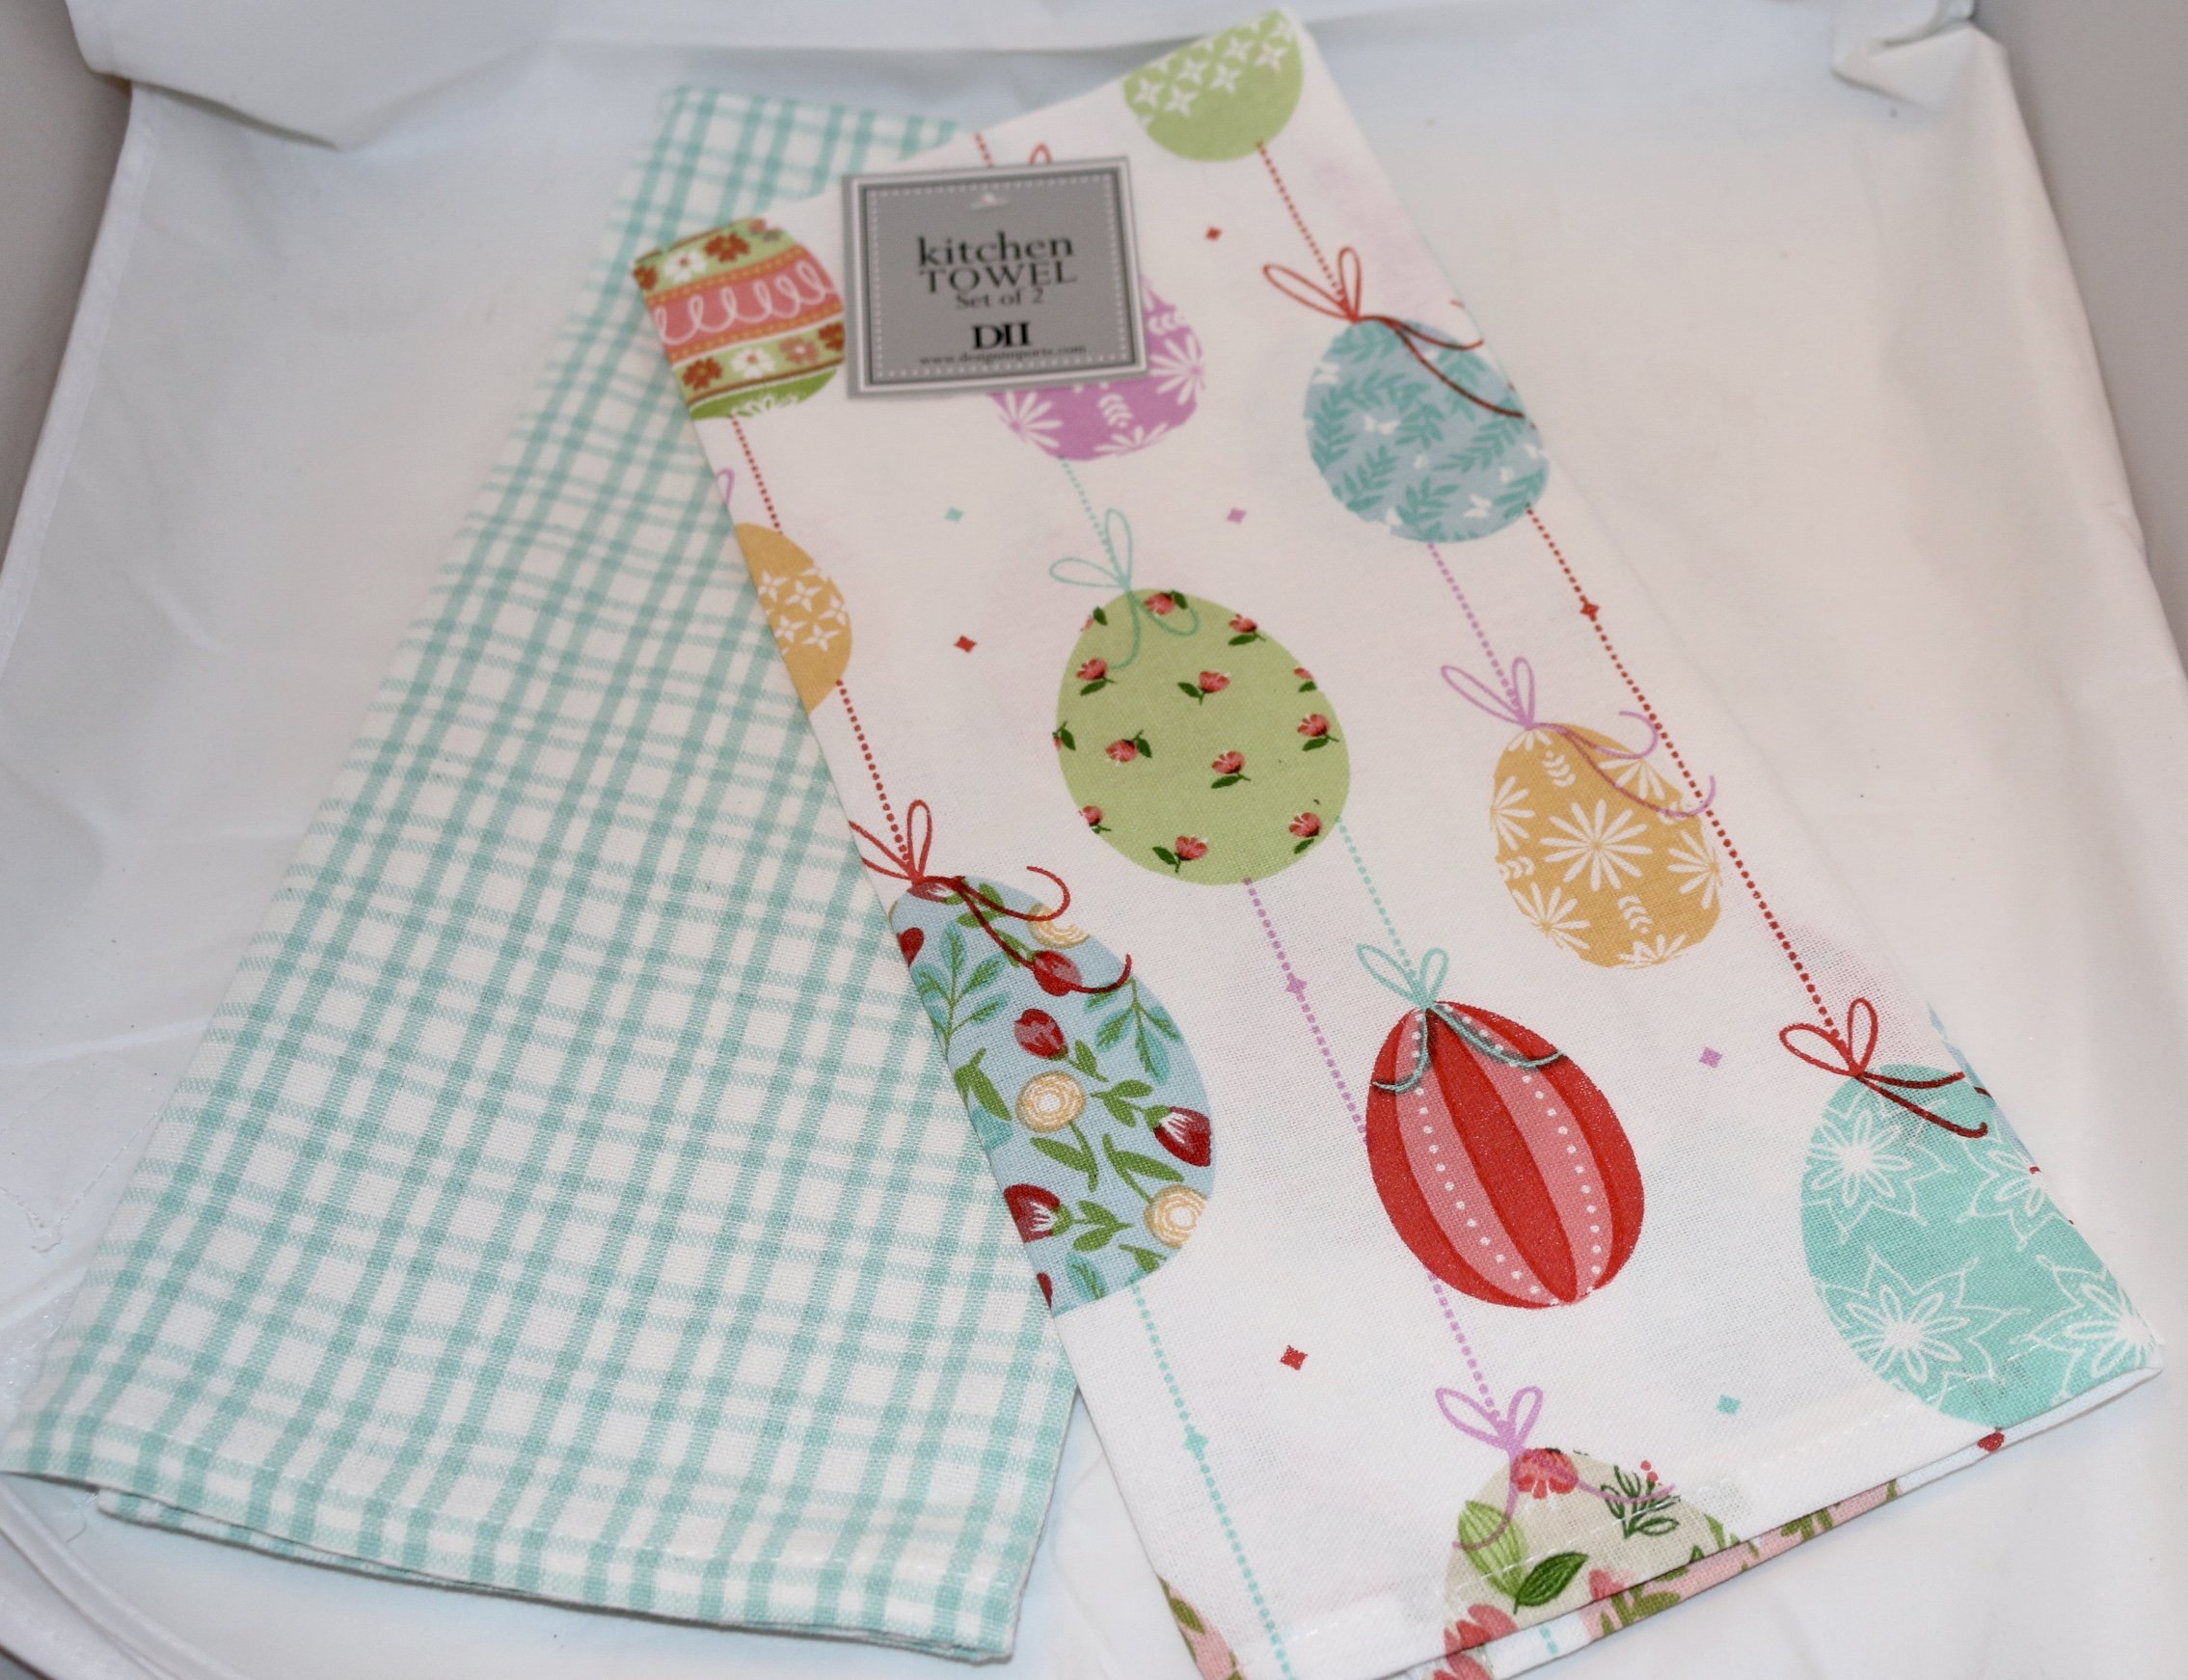 DII Design Imports French Country Cottage Easter Egg Ornaments and Plaid Printed Dishtowels Set of 2